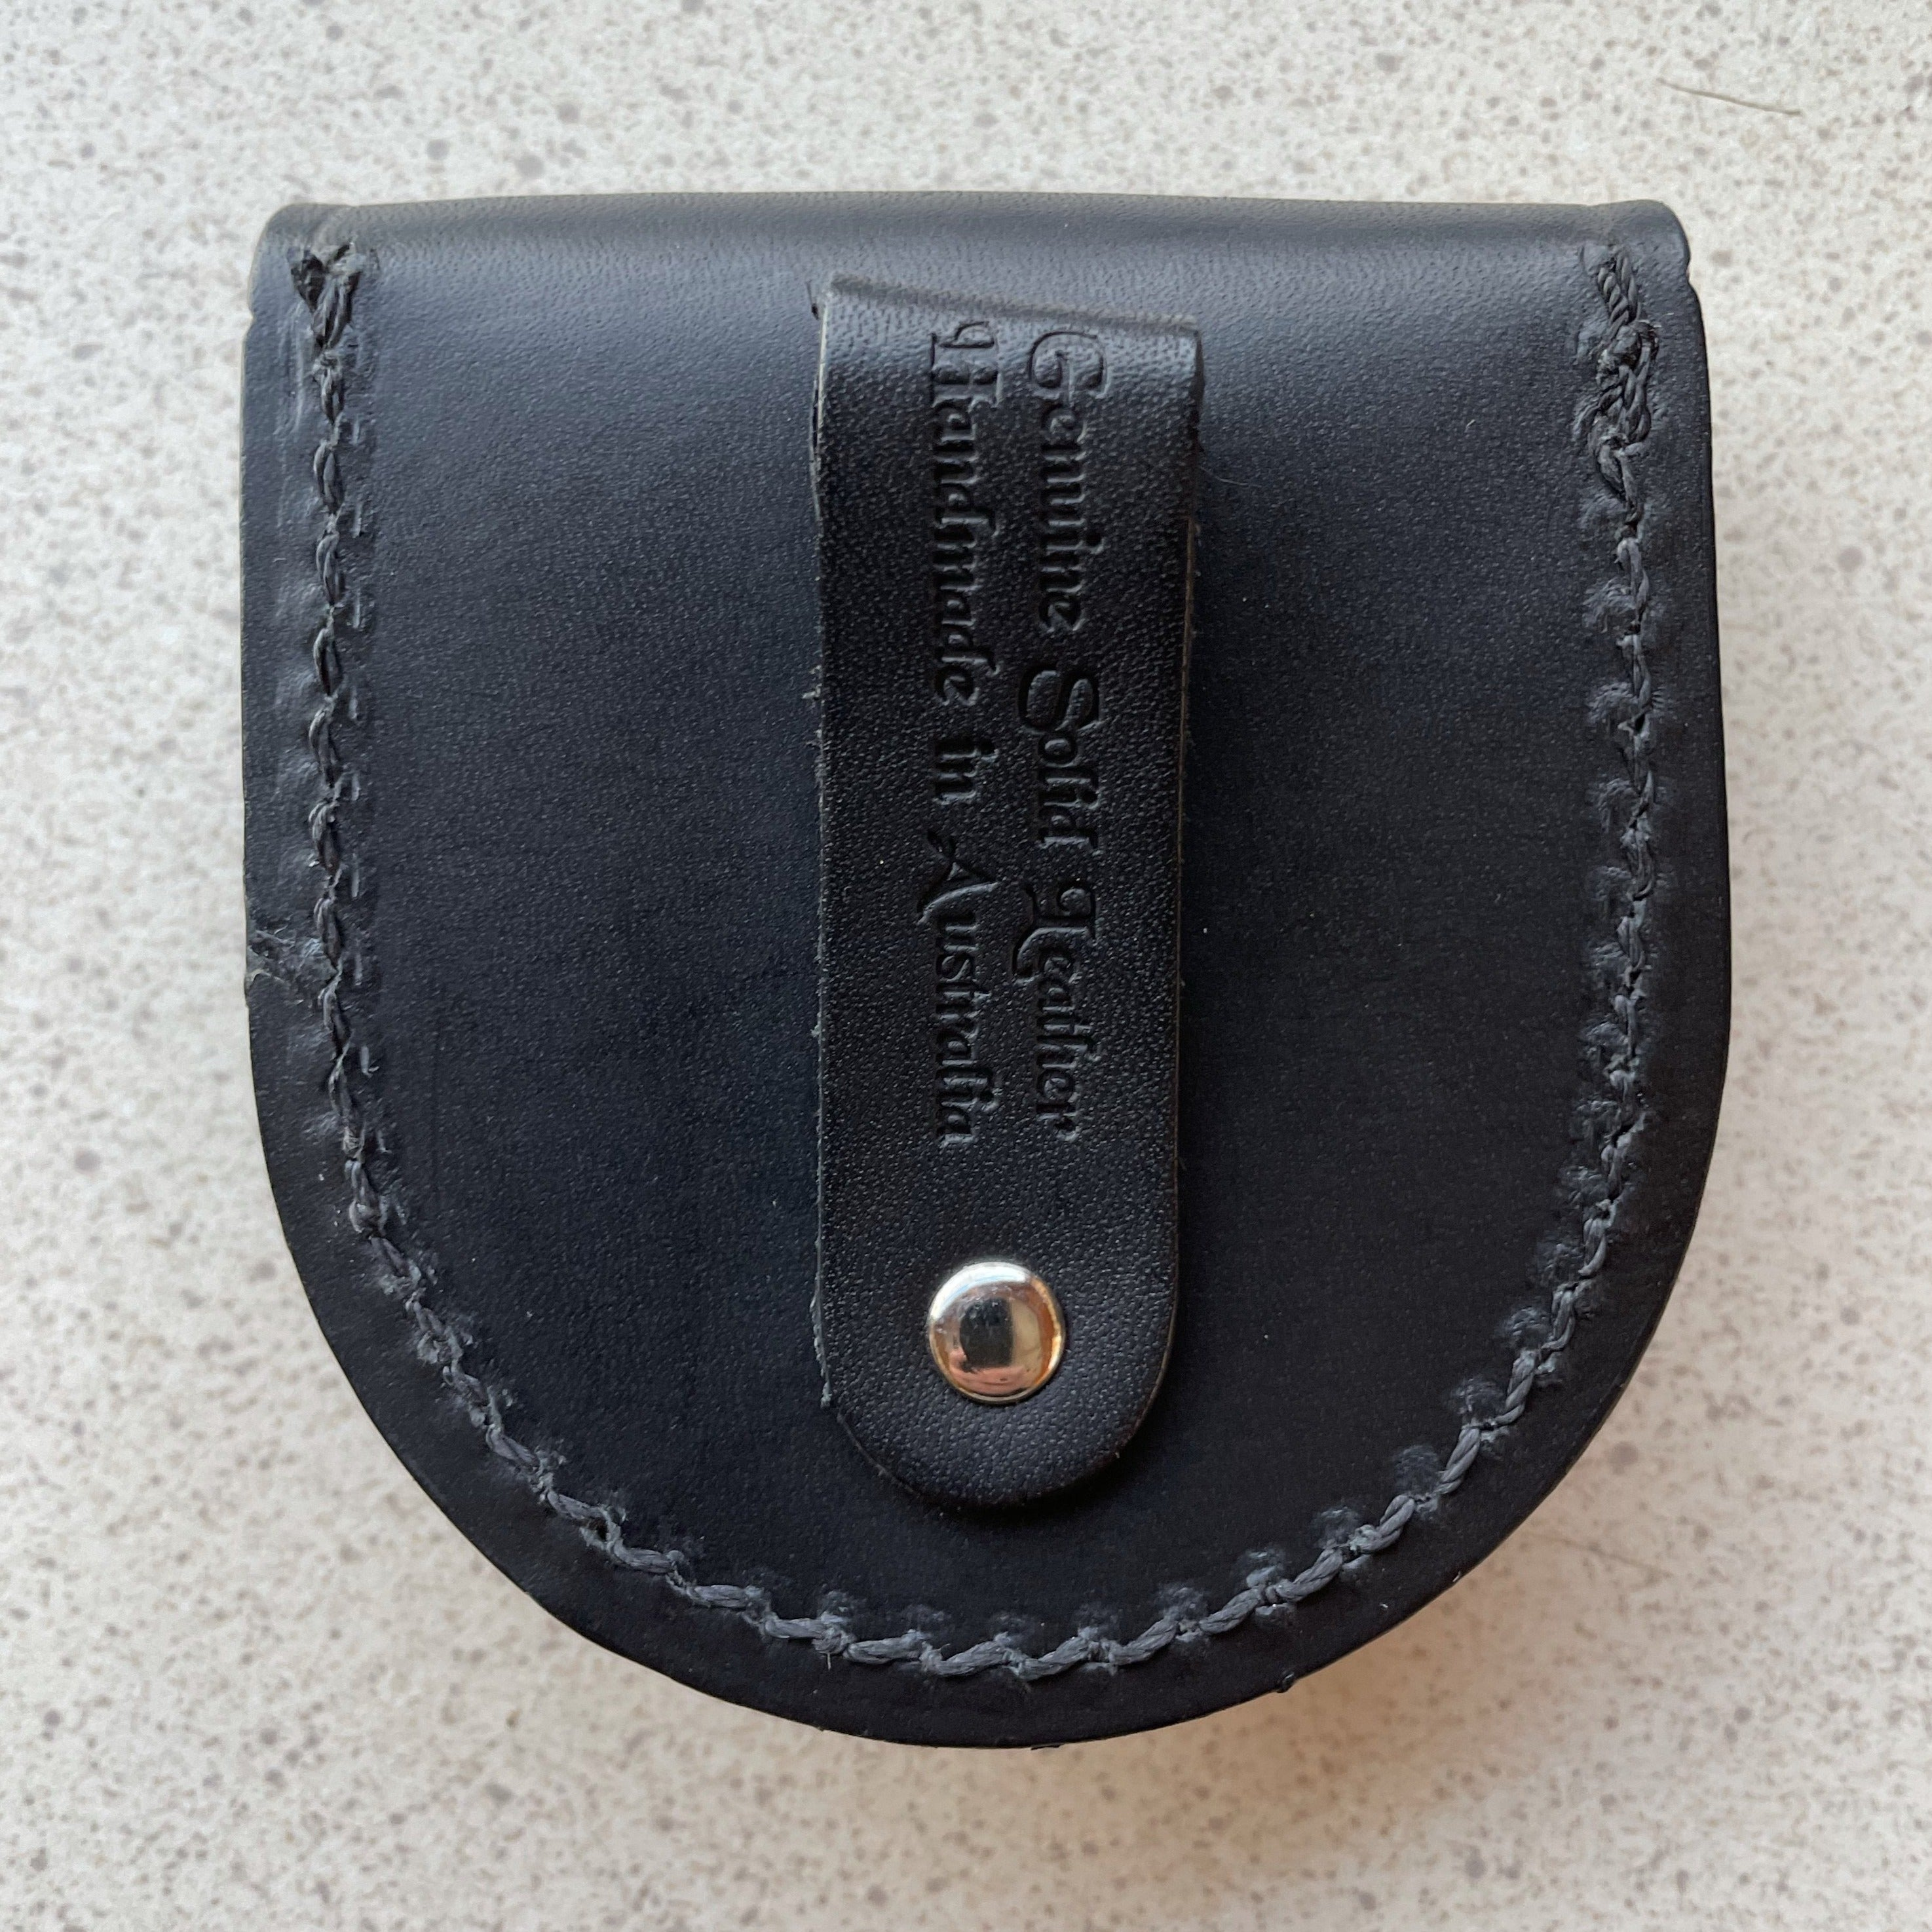 Hand Crafted Black Leather Coin Pouch